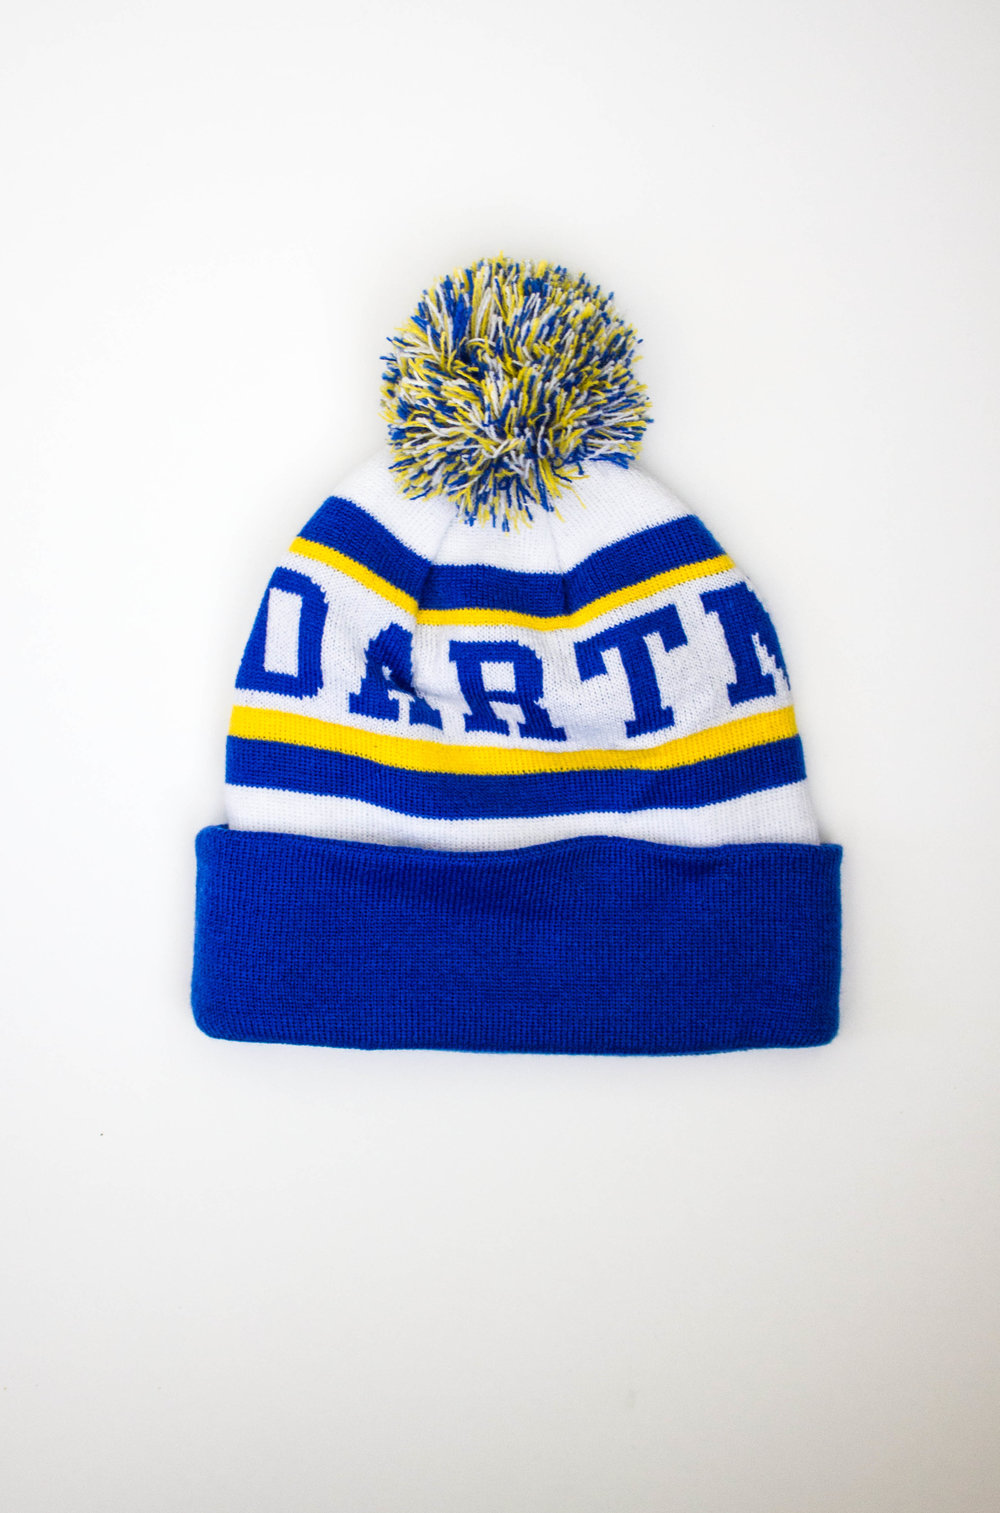 DARTMOUTH toque $20